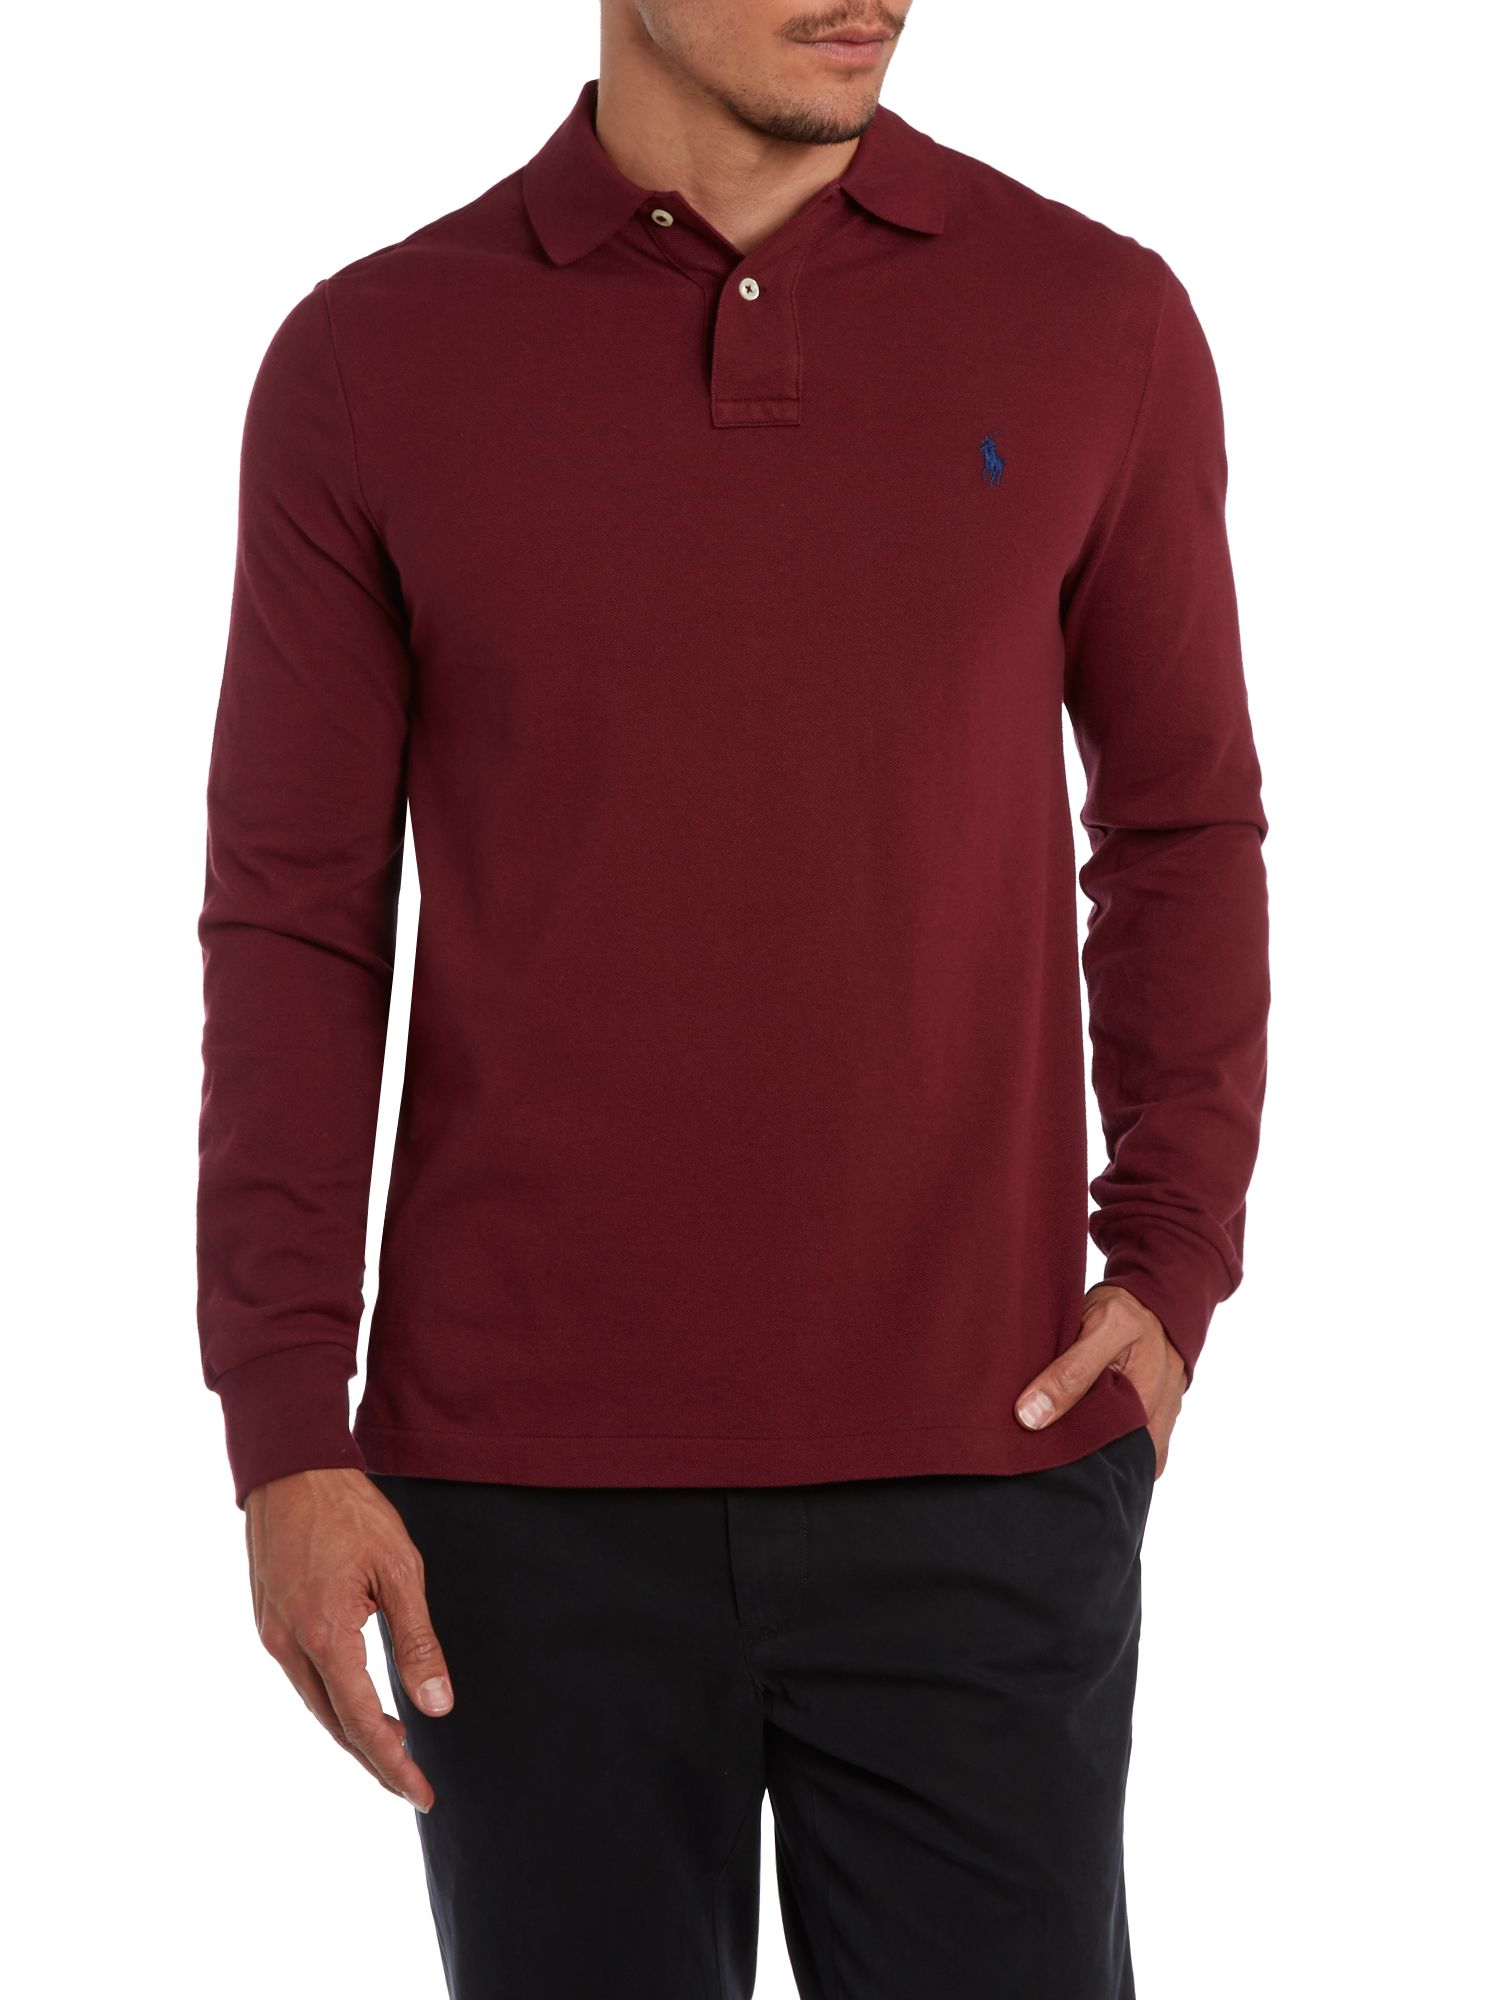 b85cec1a Polo ralph lauren Custom Fit Long Sleeve Mesh Polo Shirt in Brown for Men |  Lyst